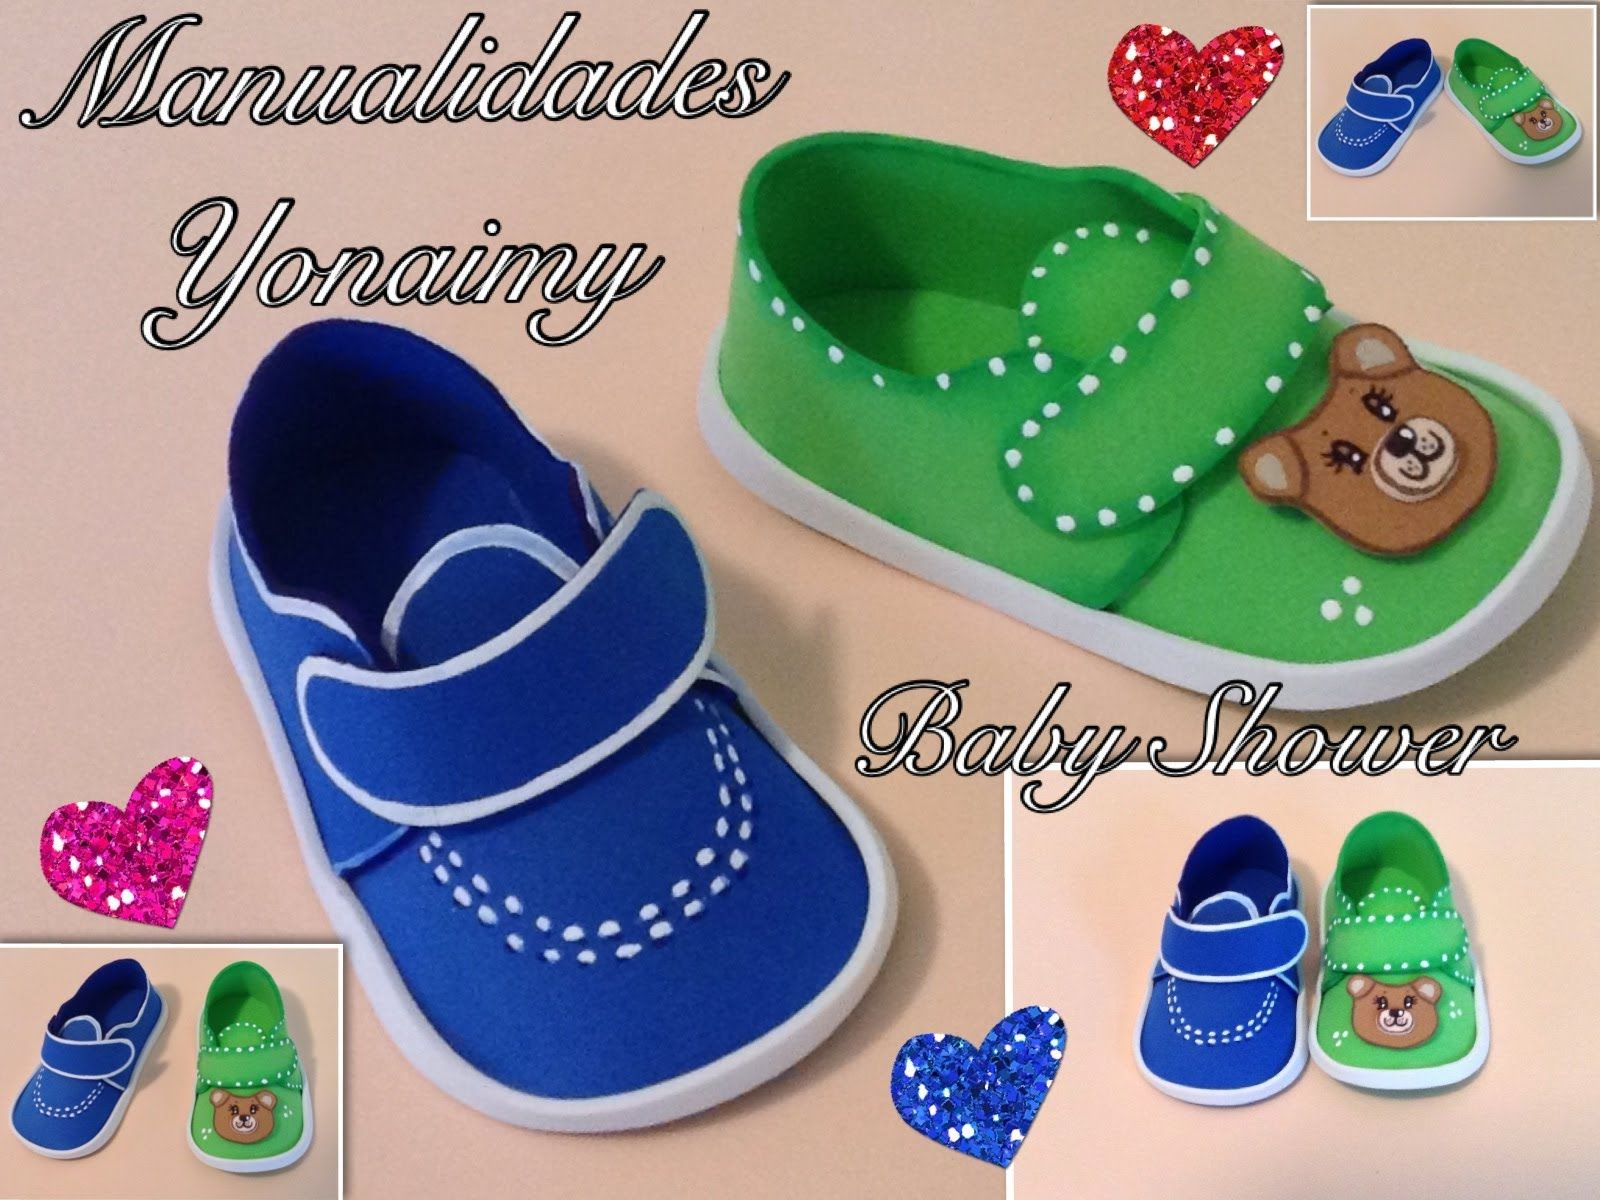 bc20adc9 ZAPATITOS DE NIÑO EN FOAMY O GOMA EVA PARA BABY SHOWER . | foamy ...